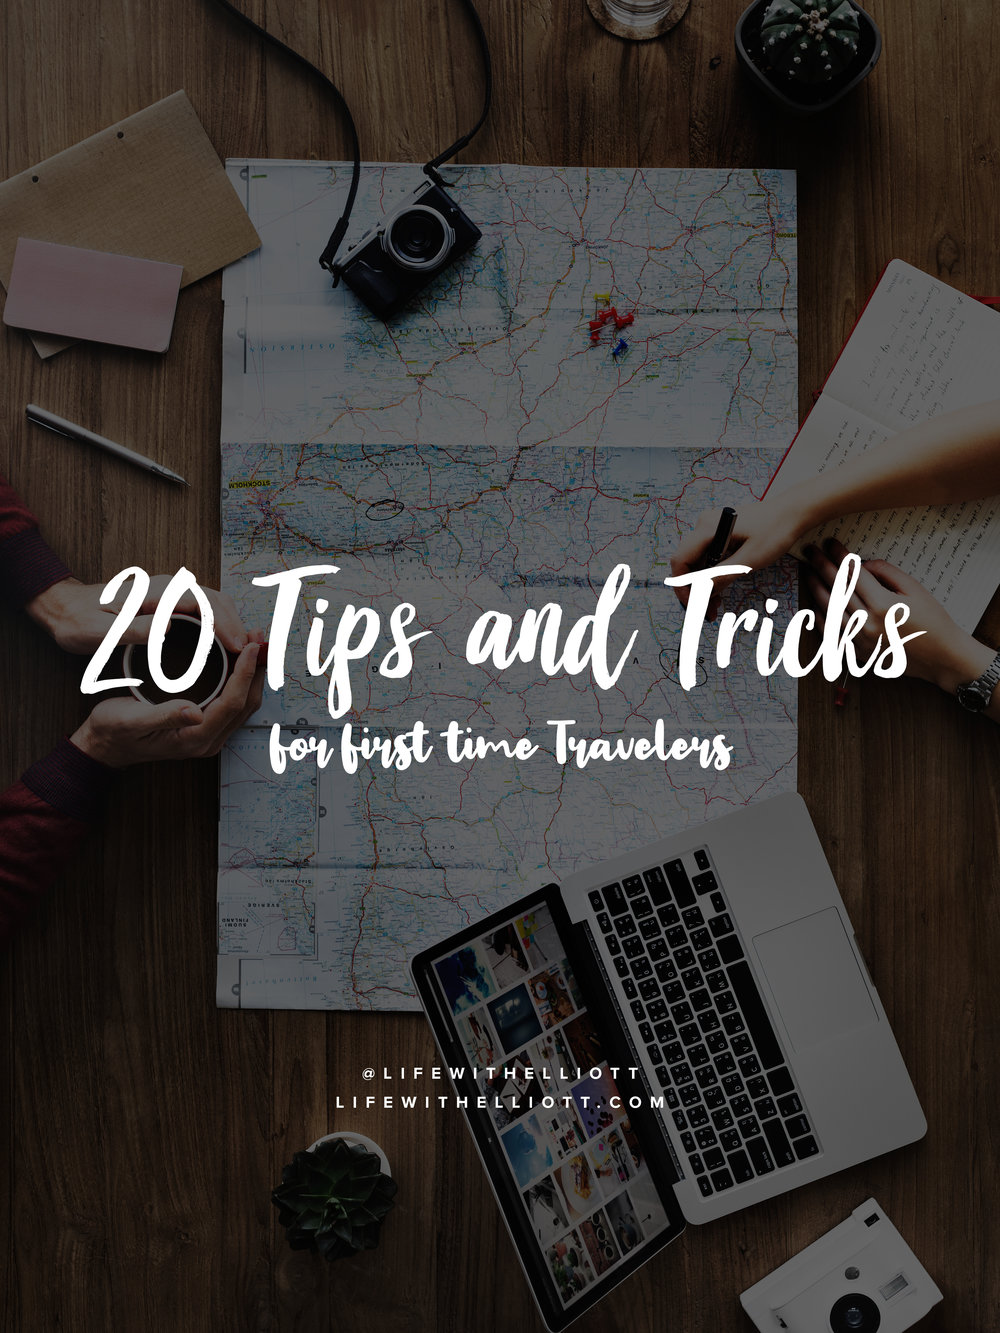 20 Tips and Tricks for First Time Travelers by LifewithElliott